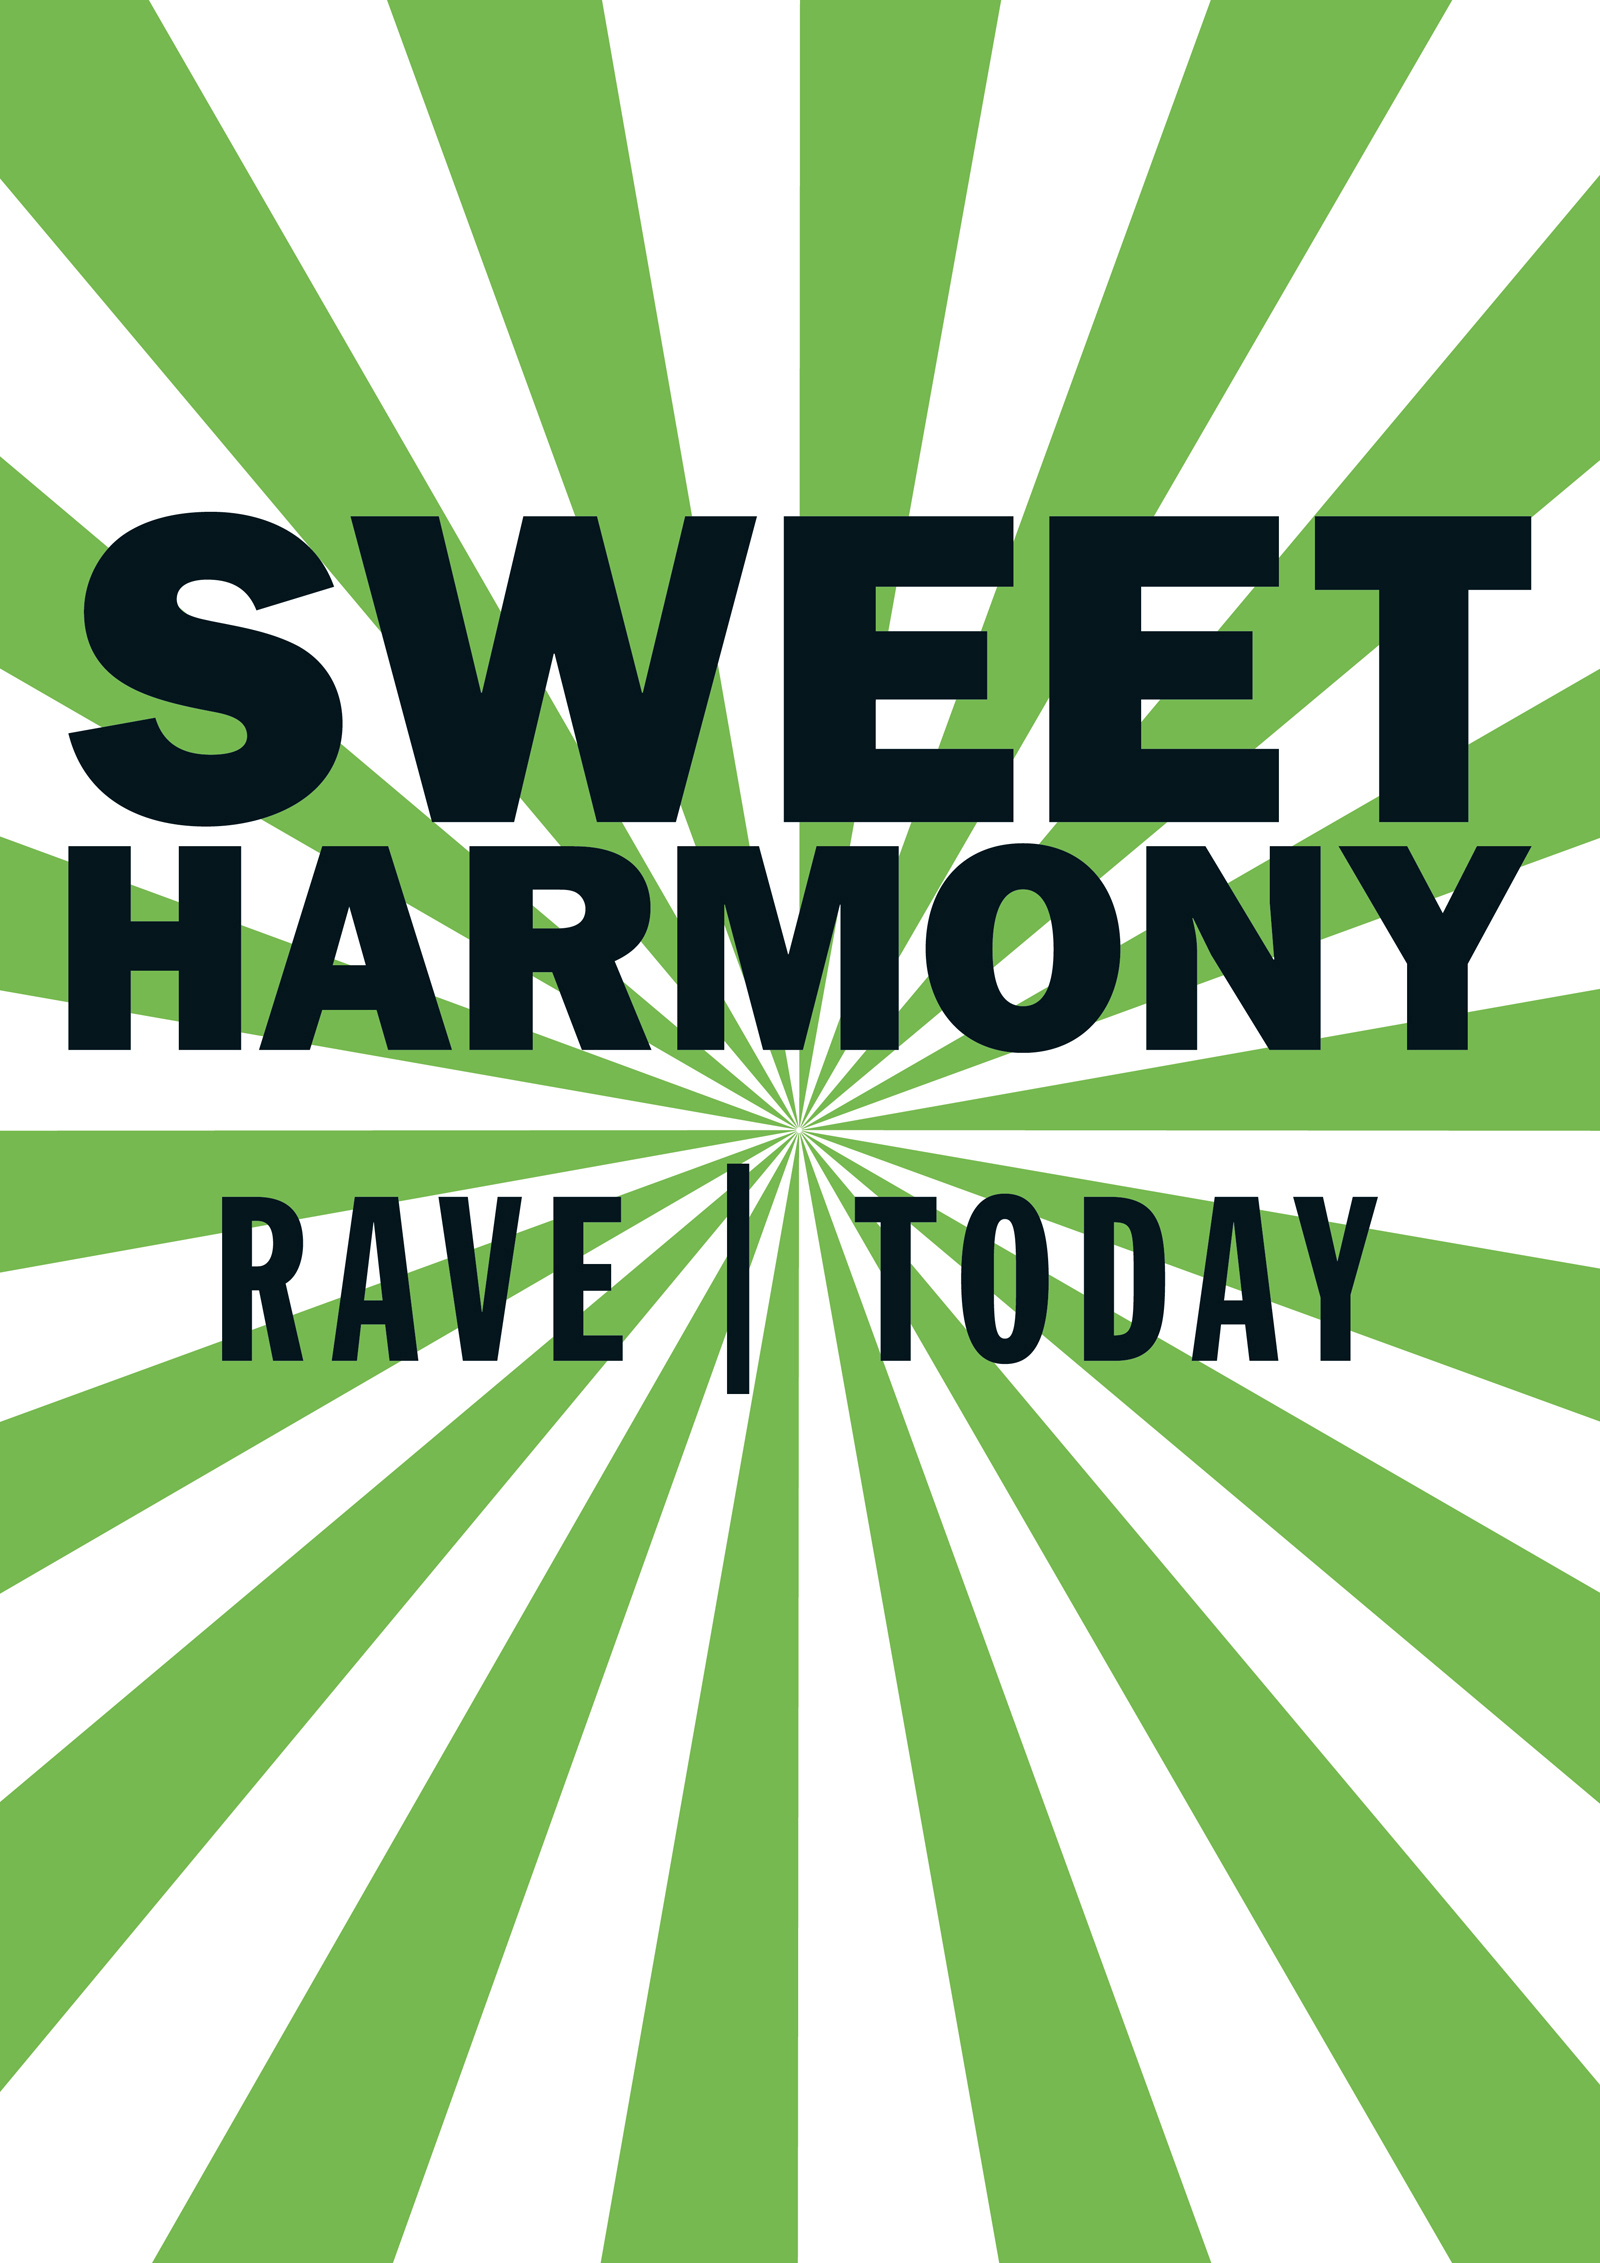 Sweet-Harmony-Saatchi-Gallery-Rave-Today-Teaser-Poster-Pavement-Licker.jpg